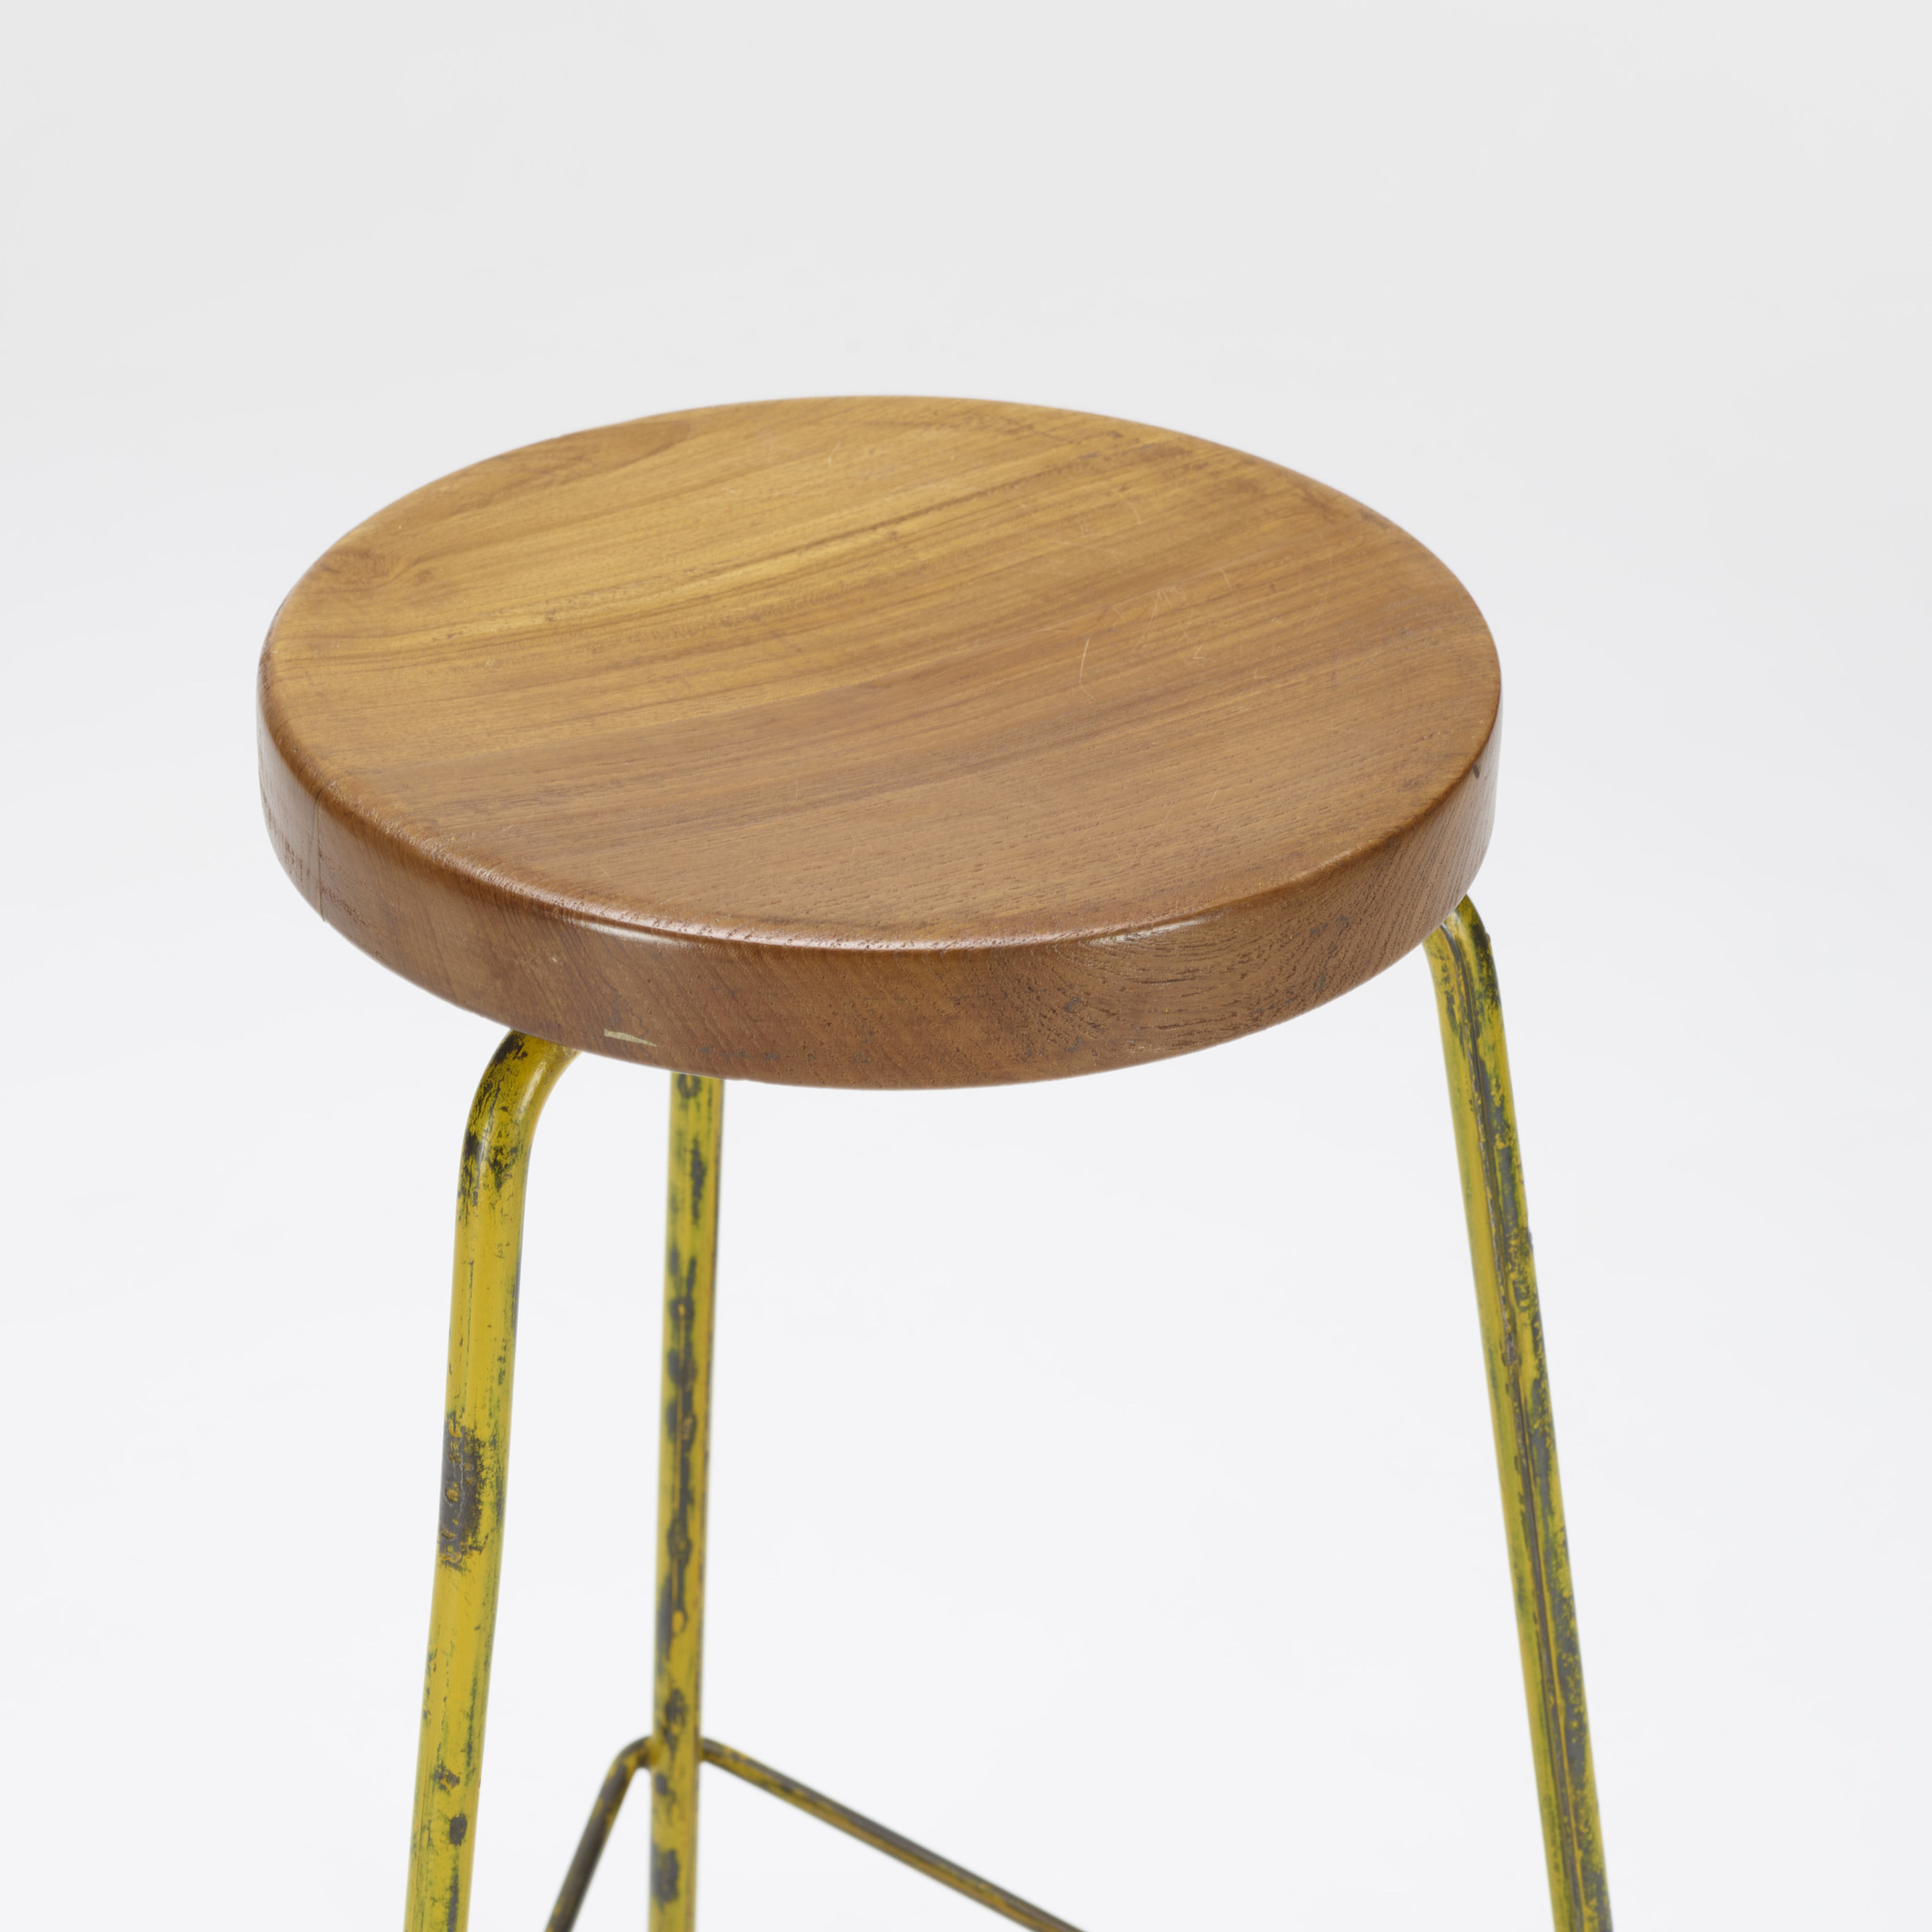 126: Pierre Jeanneret / stool from the College of Architecture, Chandigarh (2 of 2)